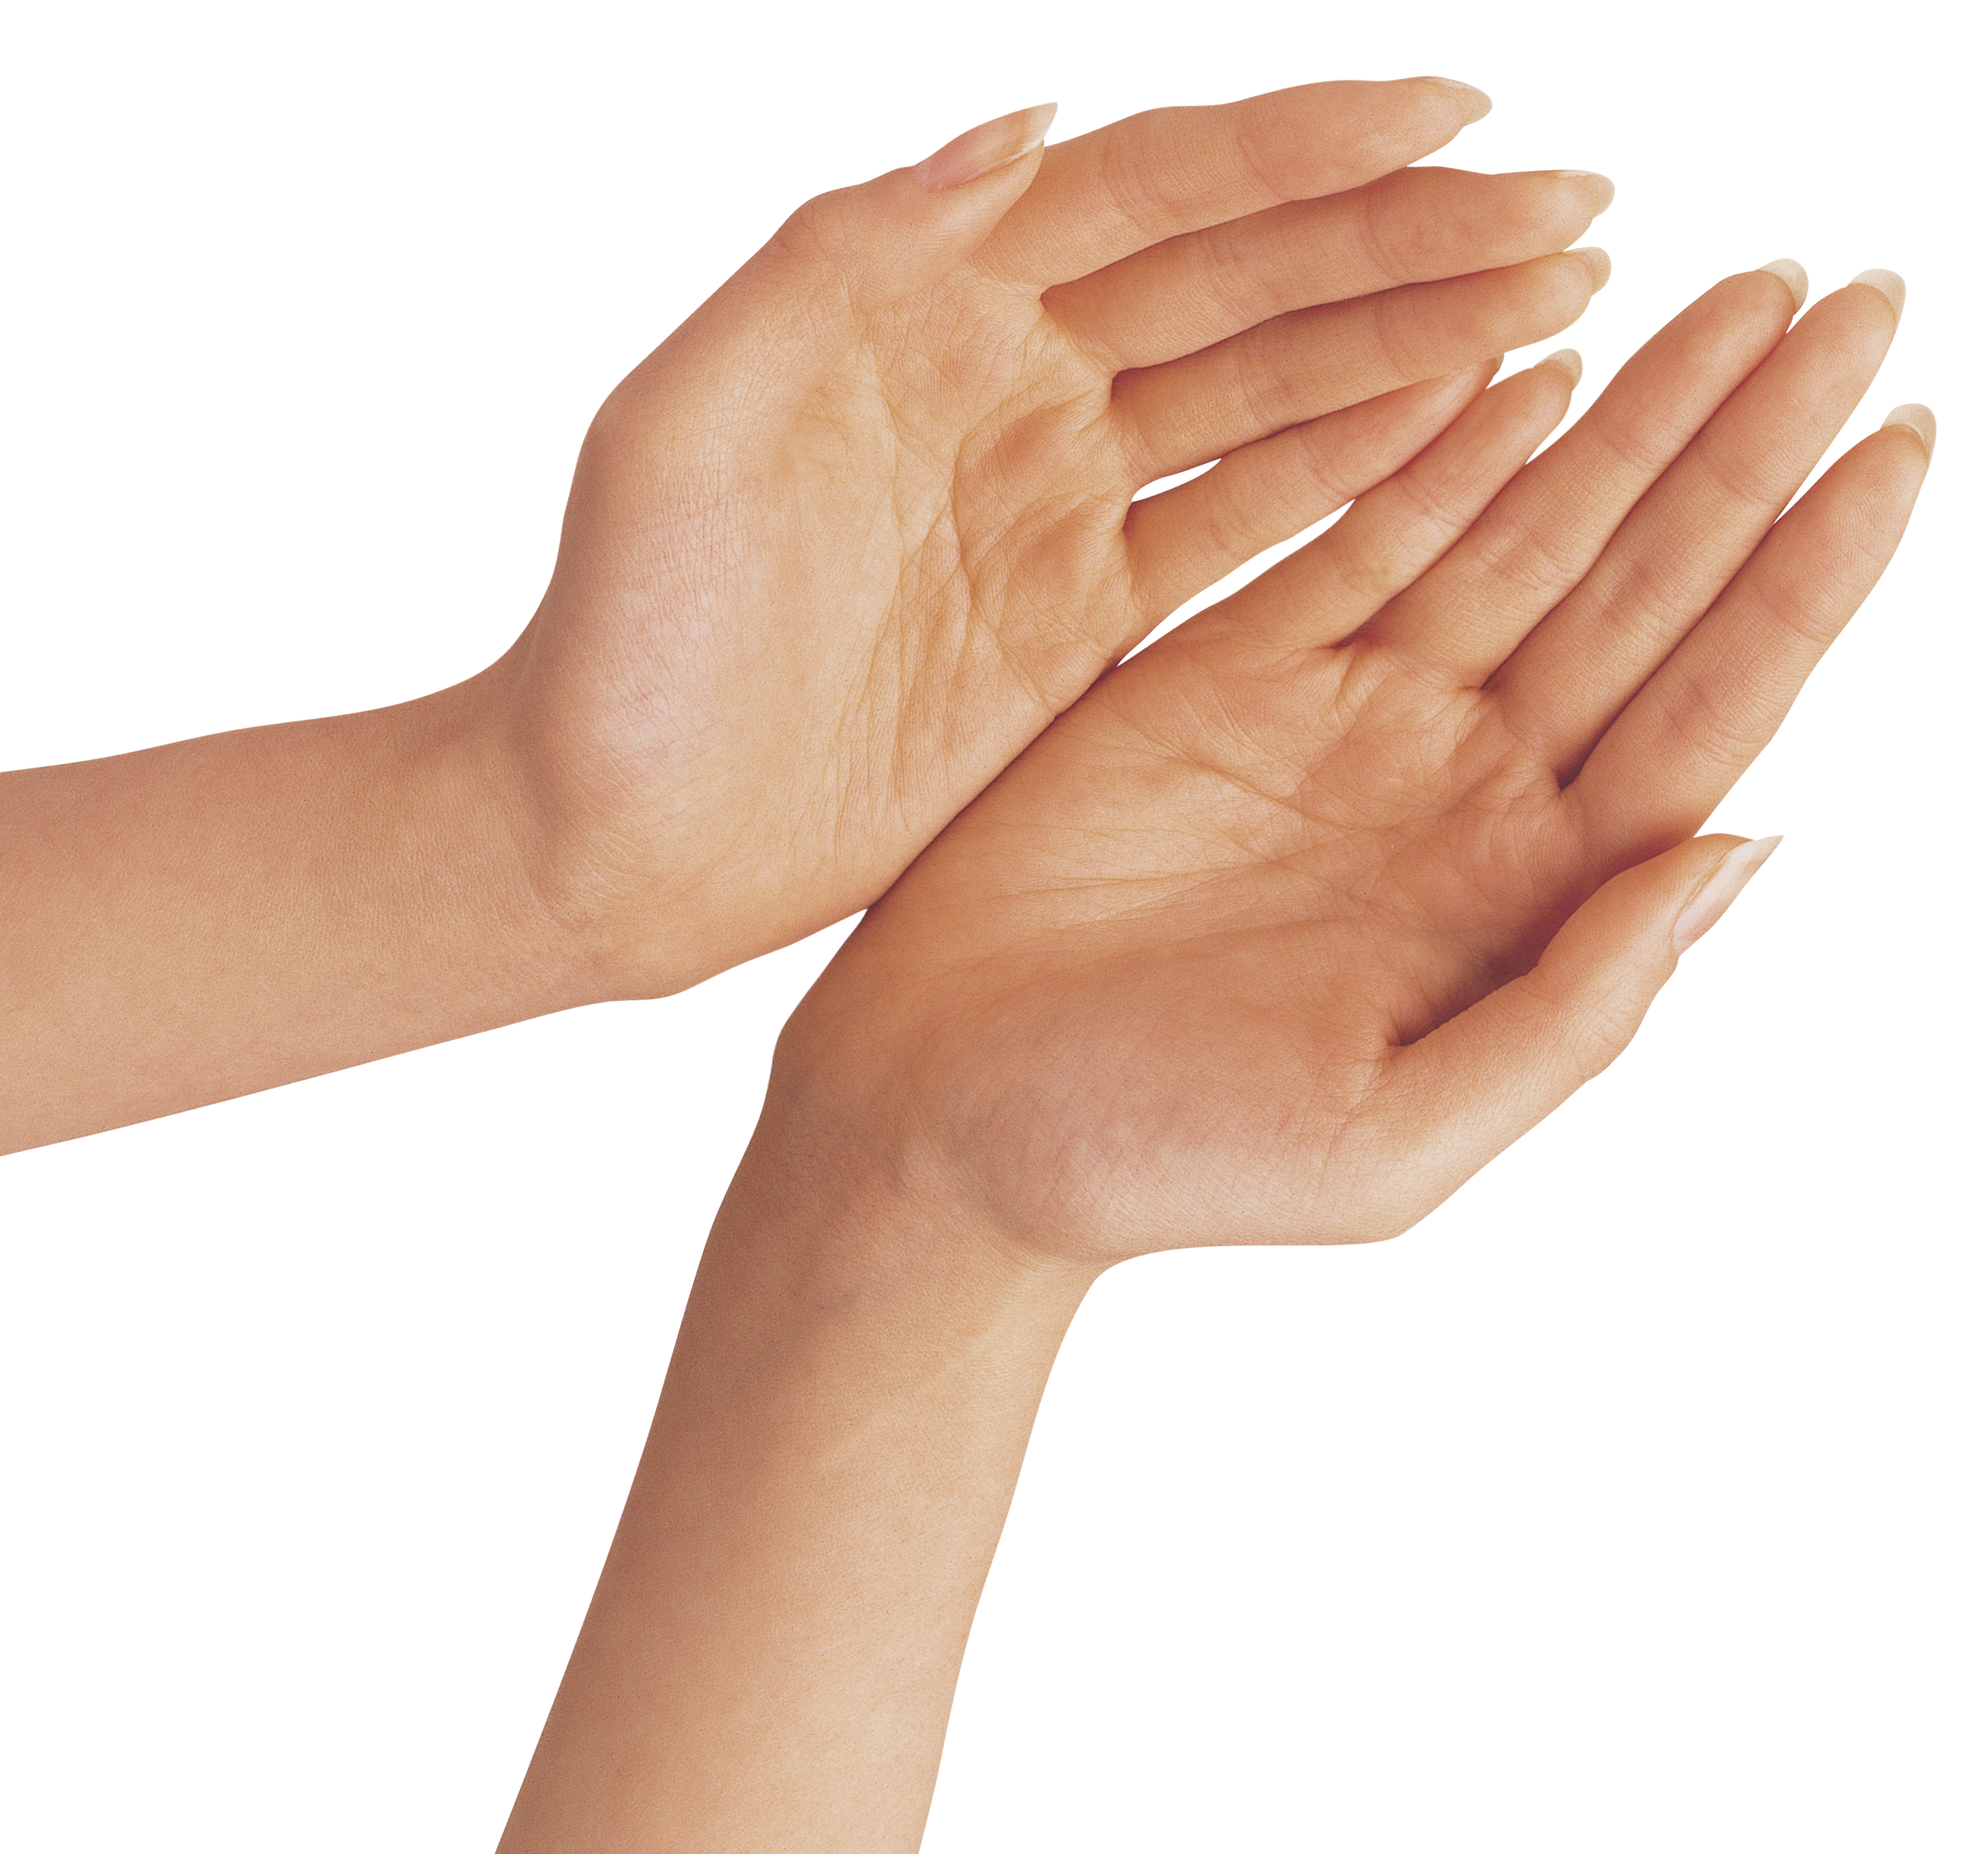 Hands together png. Two clipart image gallery